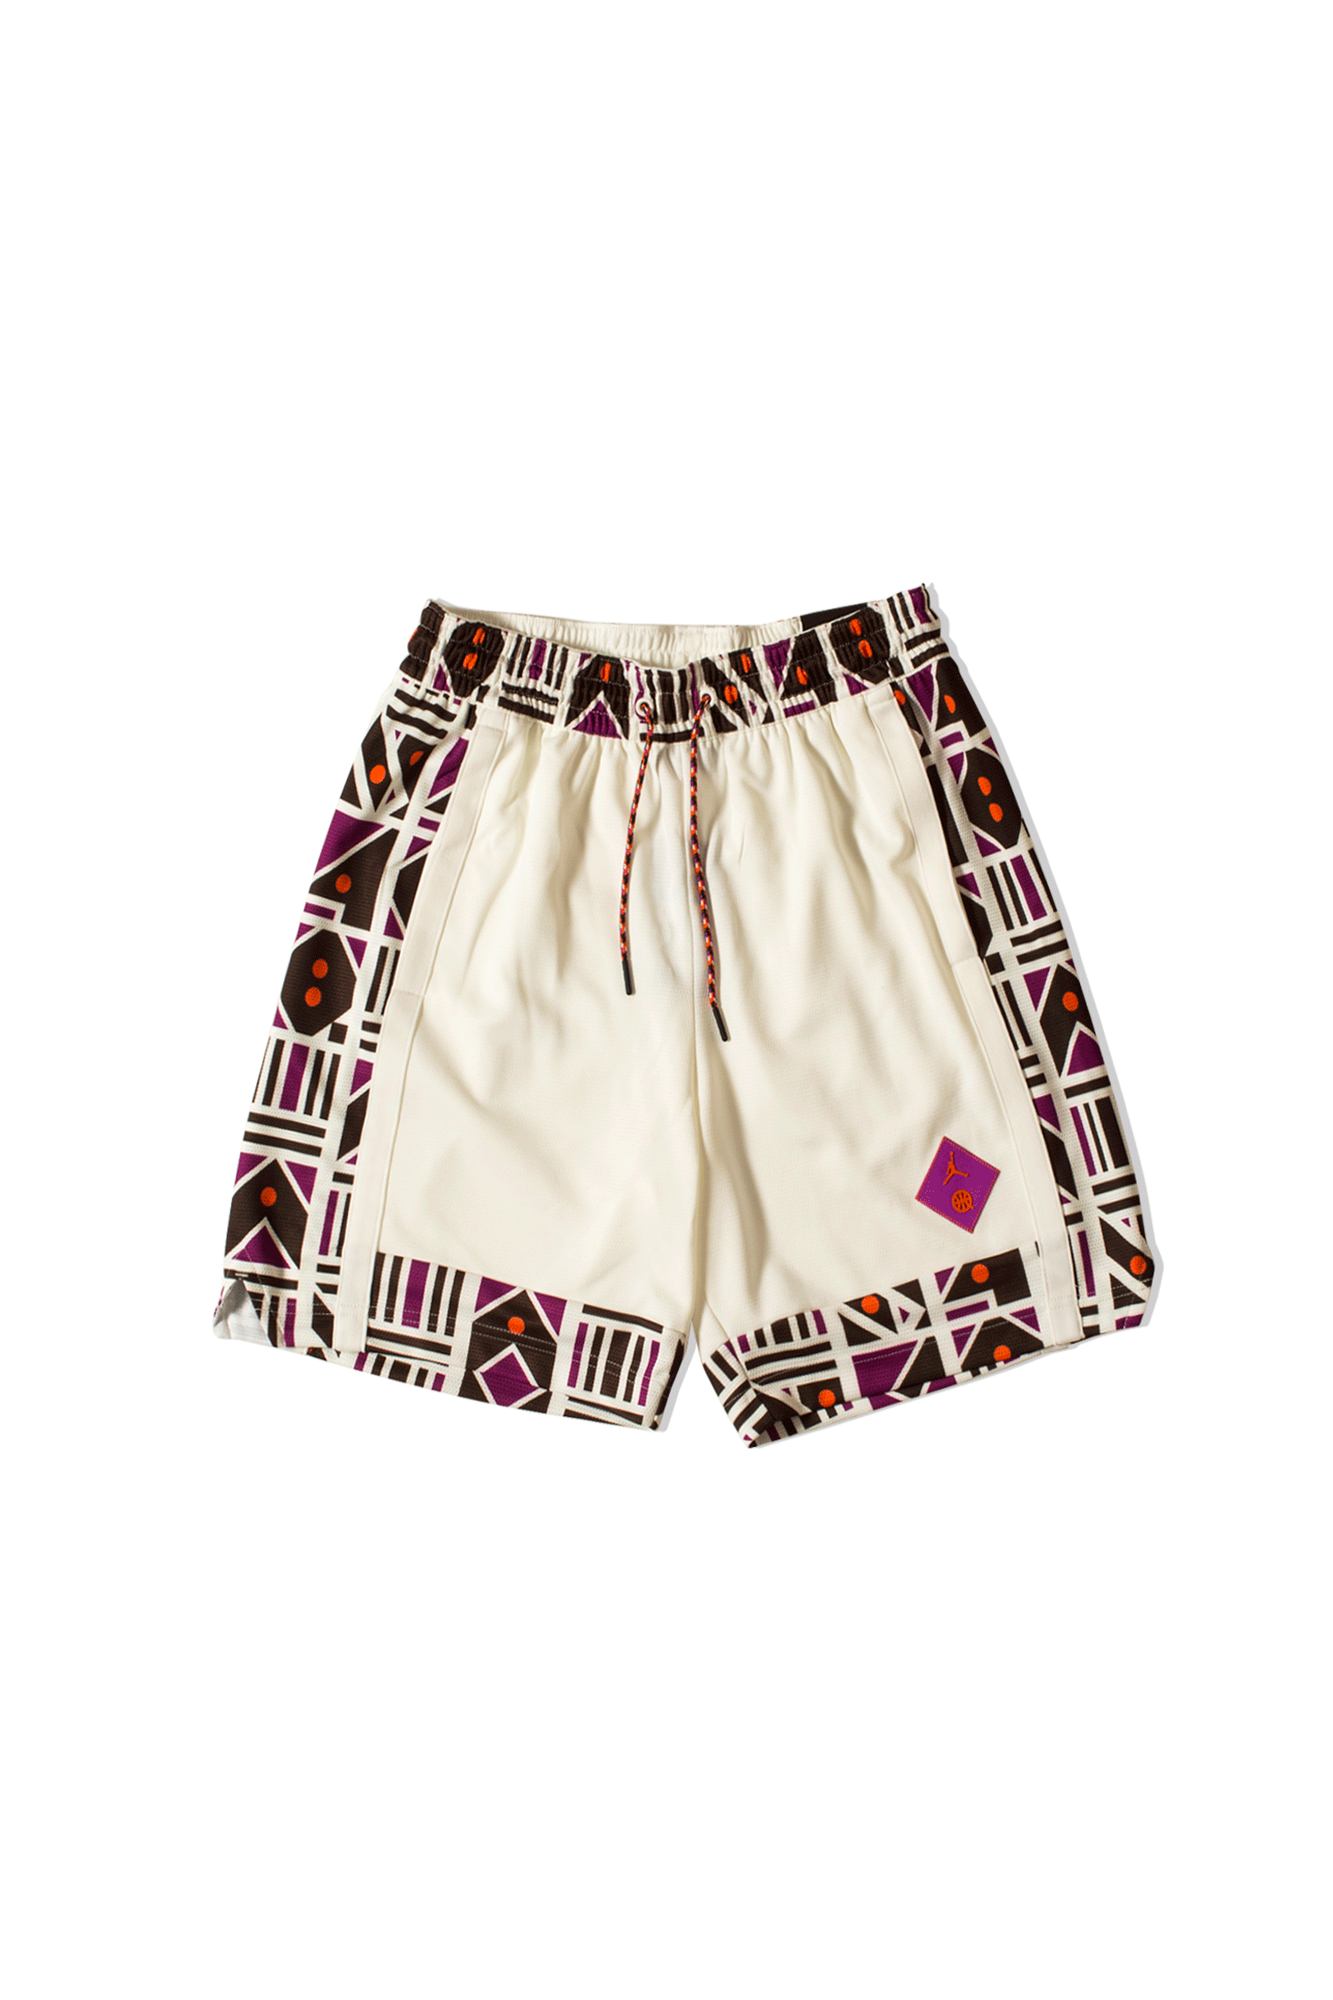 Quai 54 Air Basketball Short White